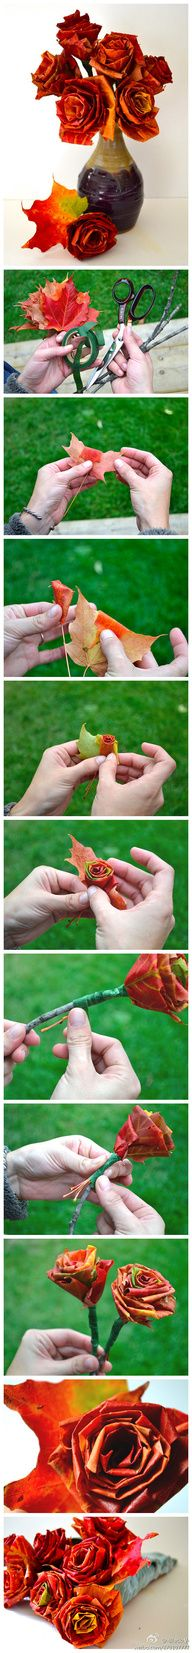 Roses from Fall Leaves <3